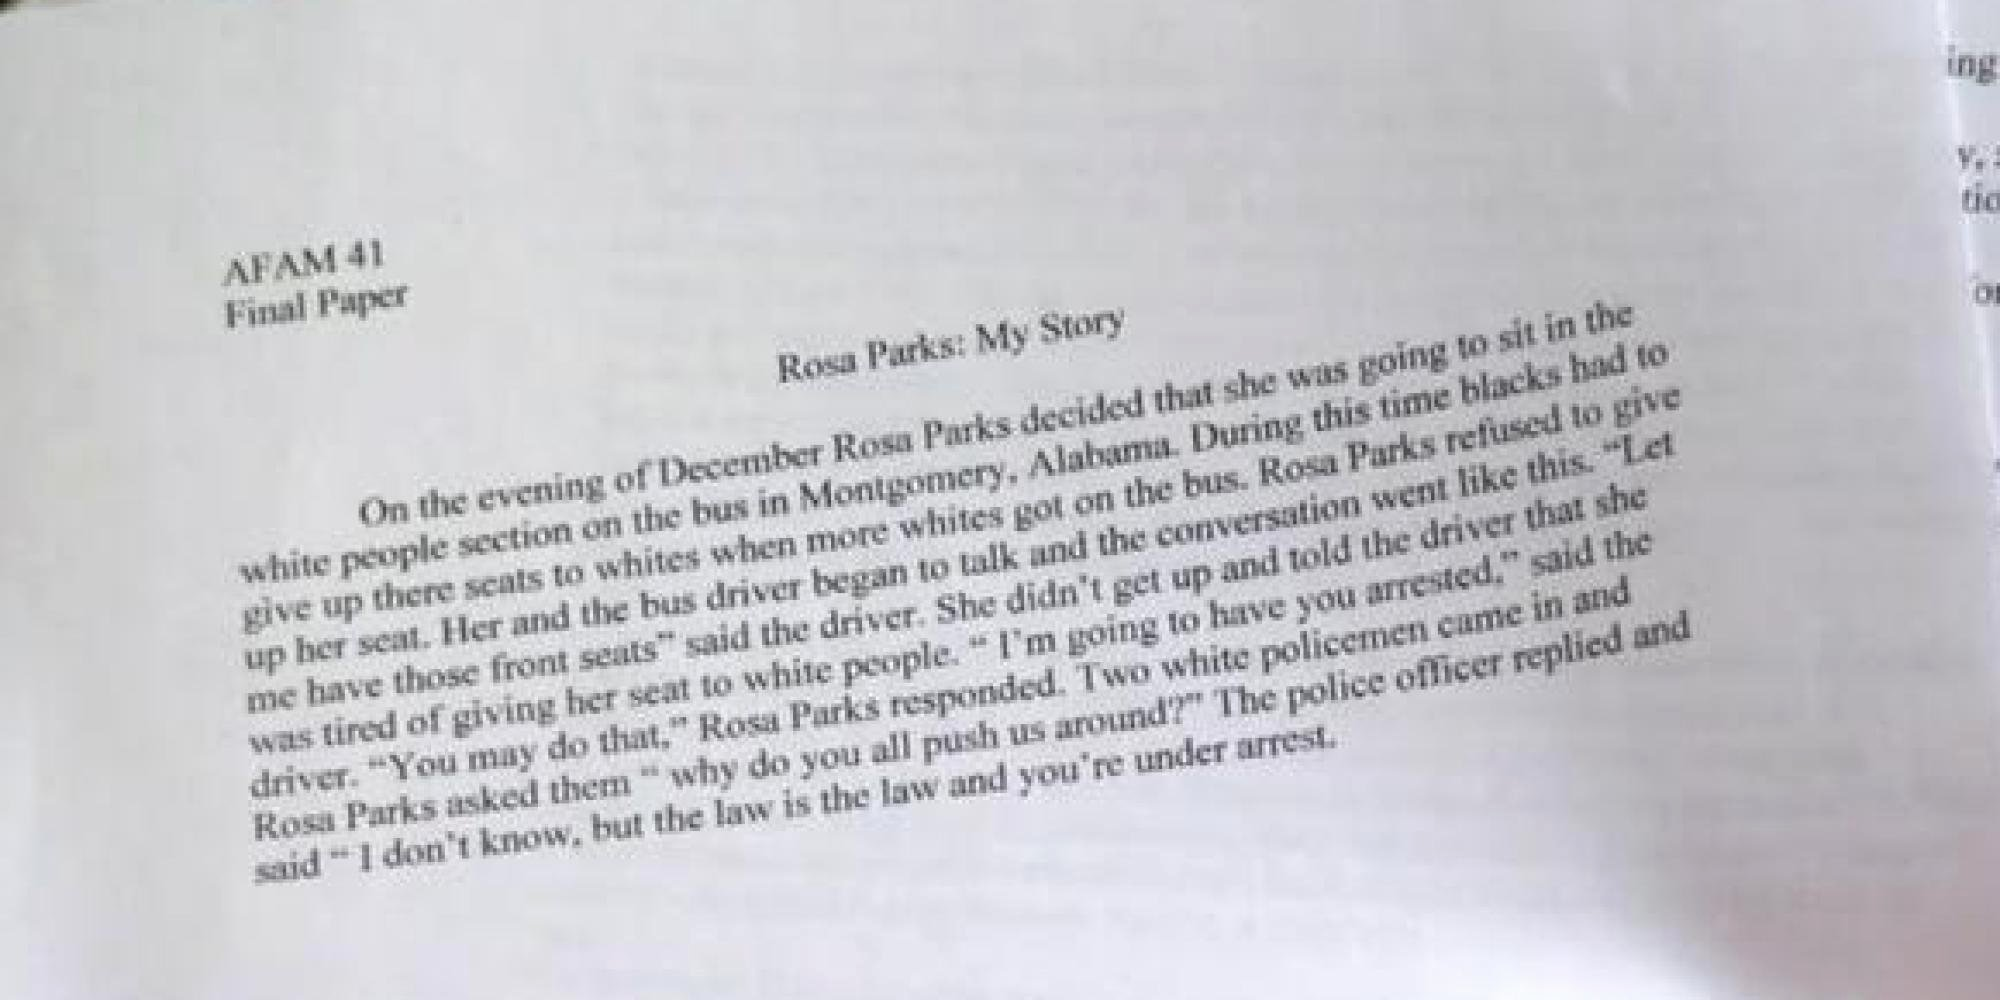 Unc Rosa Parks Final Paper New Unc Player Wrote This Paper Rosa Parks and somehow